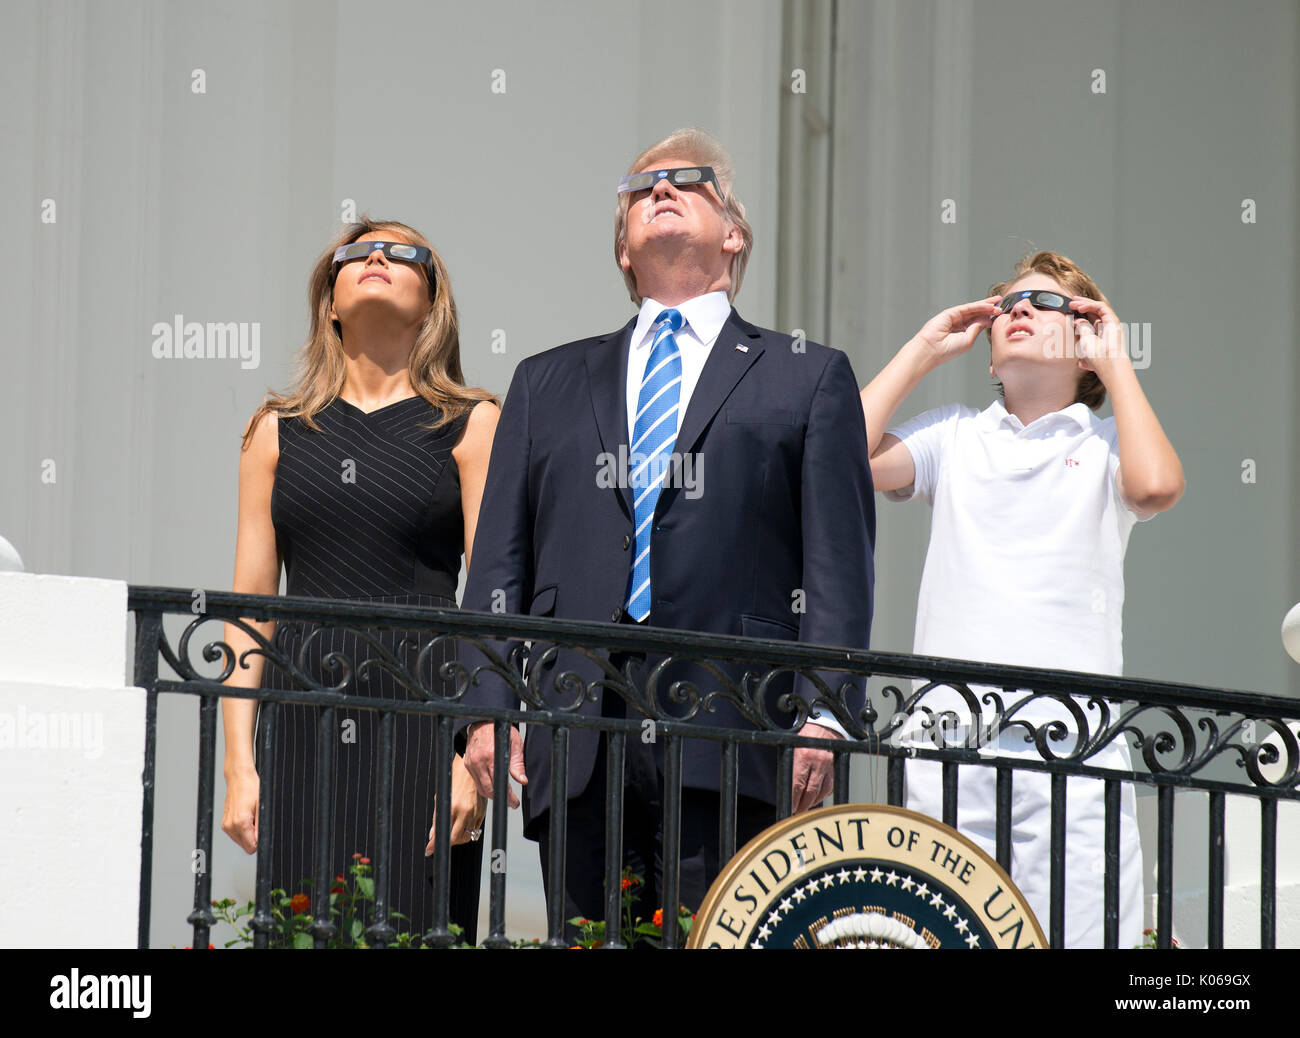 United States President Donald J. Trump, center, accompanied by first lady Melania Trump, left, and Barron Trump, Stock Photo